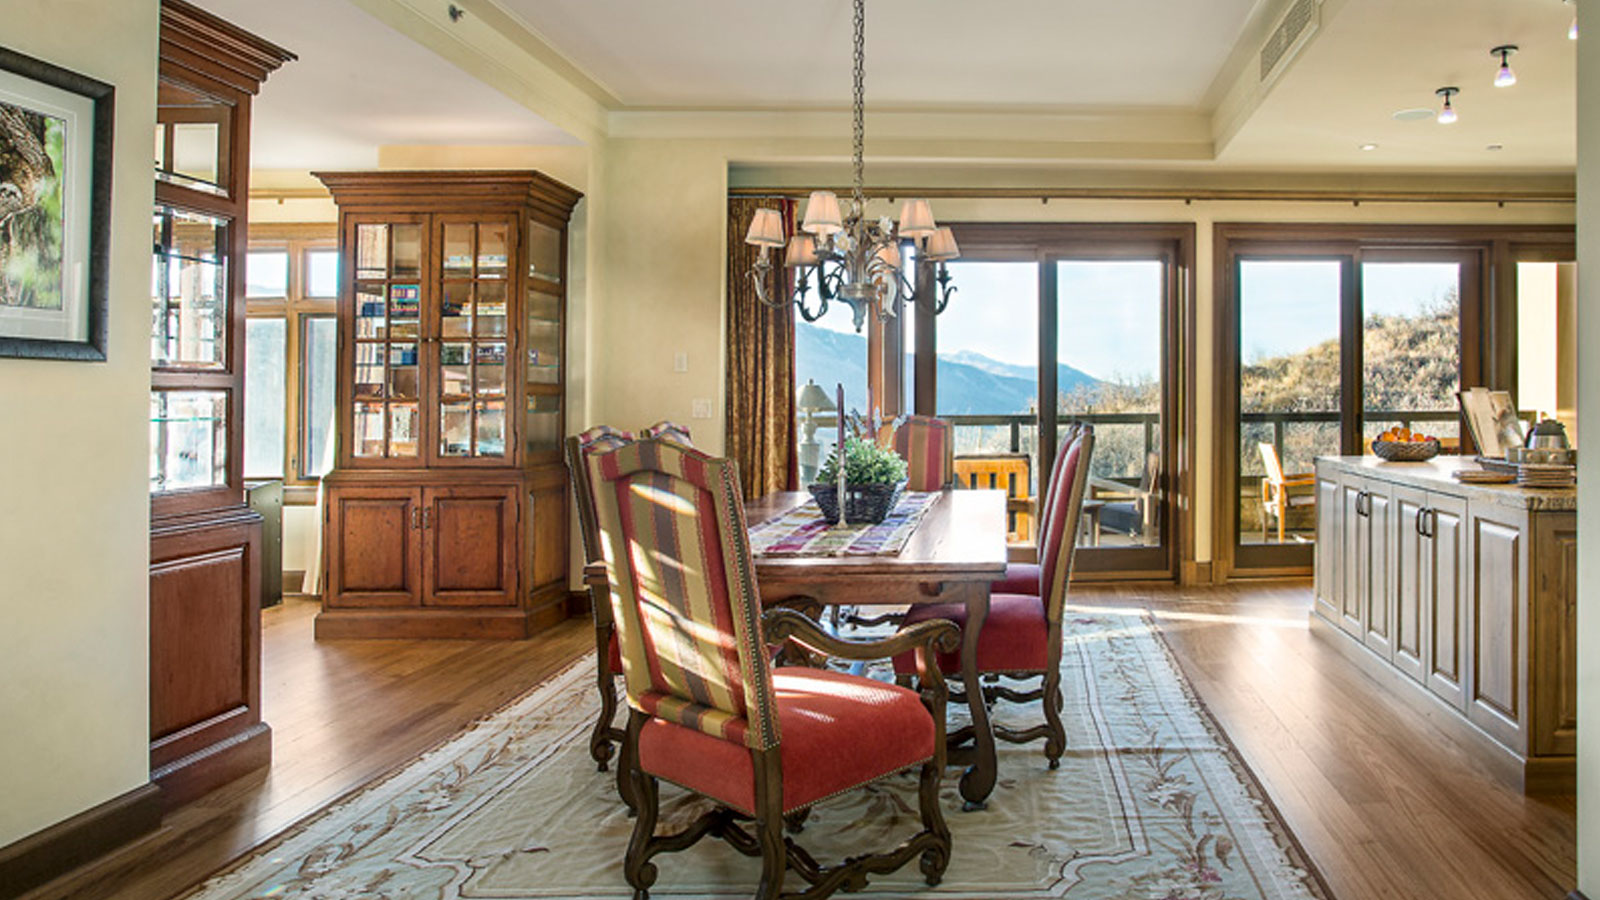 Park City Rentals - John Jacob Astor Residence